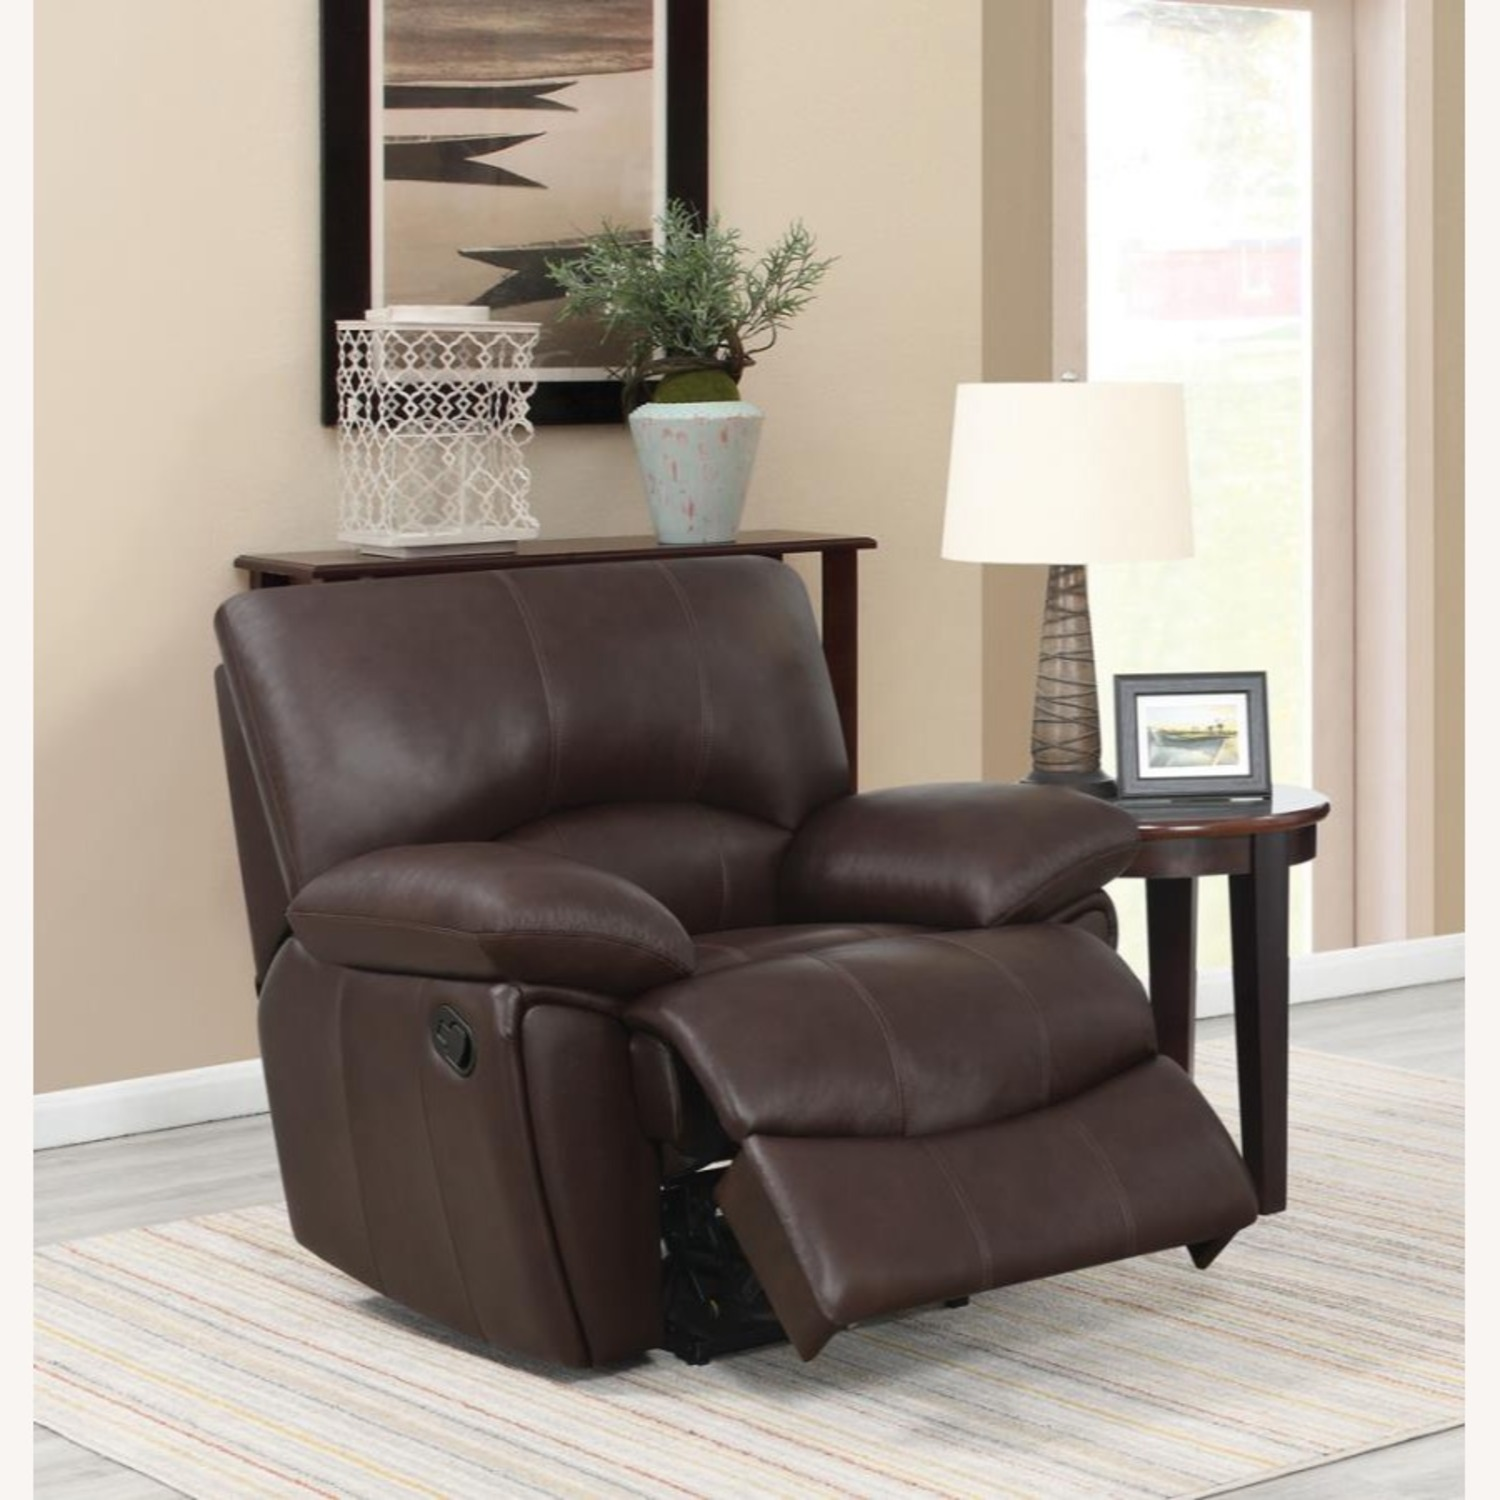 Recliner Chair In Chocolate Top Grain Leather - image-5